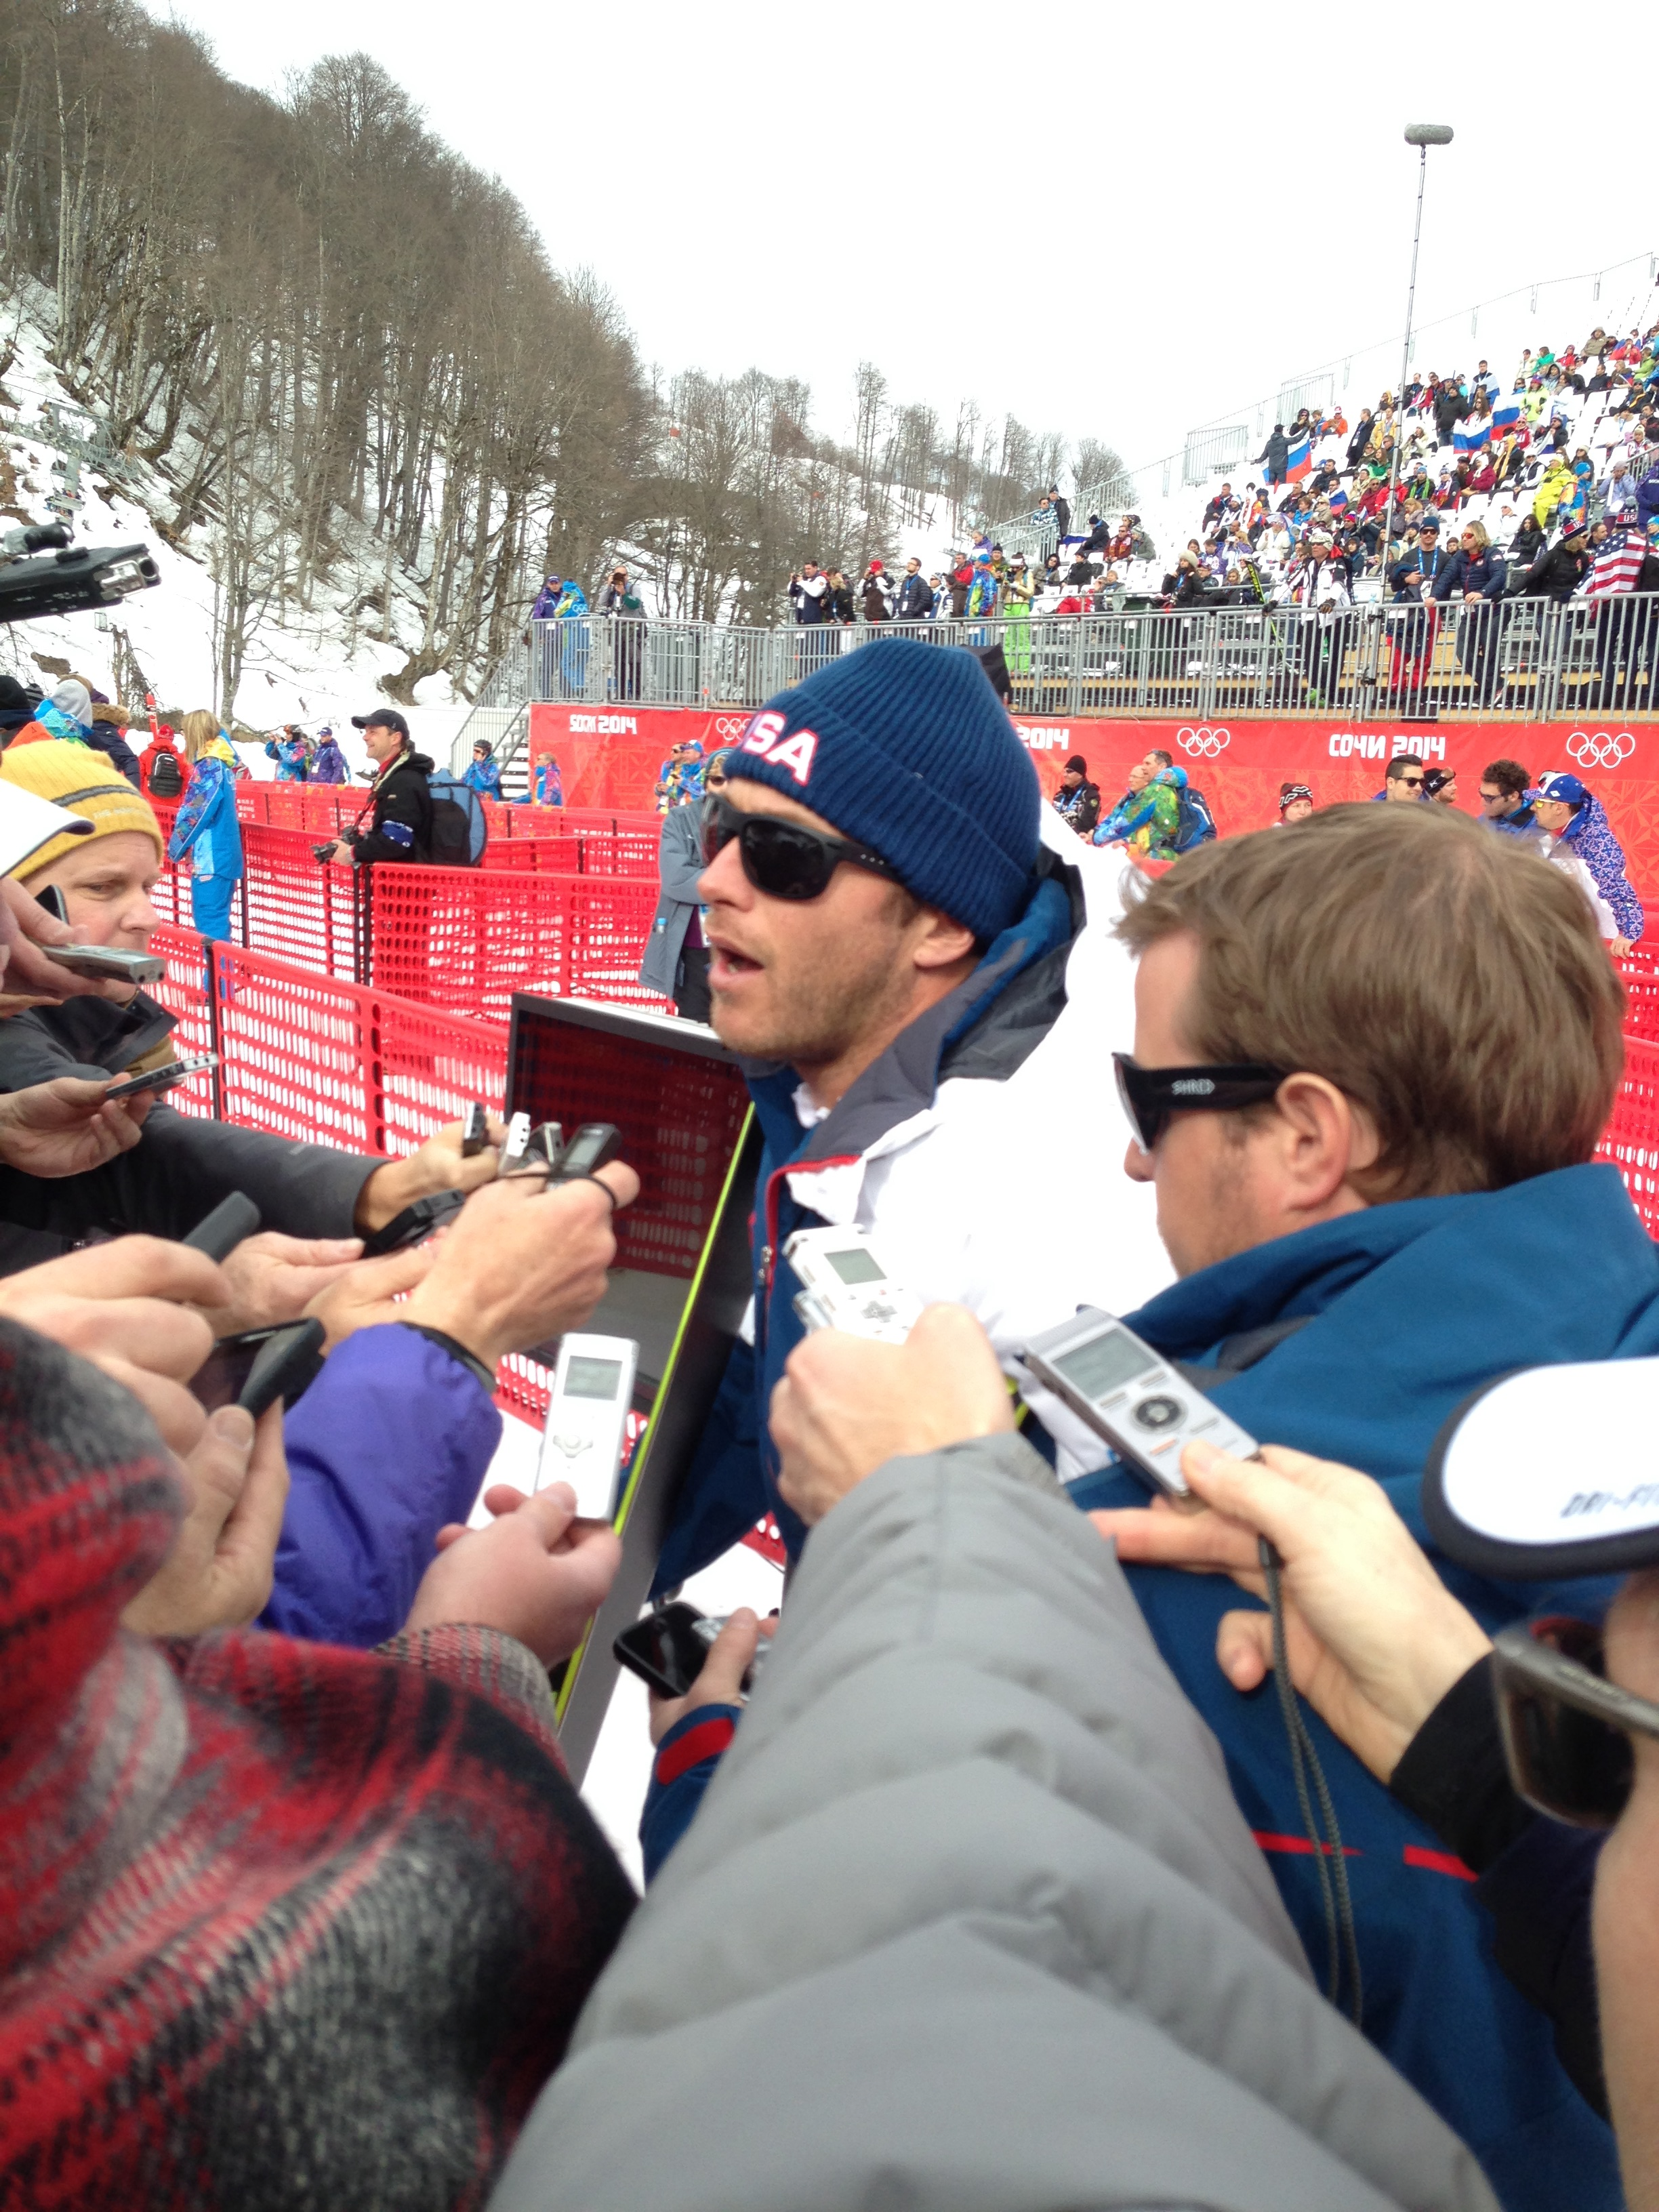 The media crowd encircling Bode Miller after his eighth-place finish in the Olympic downhill